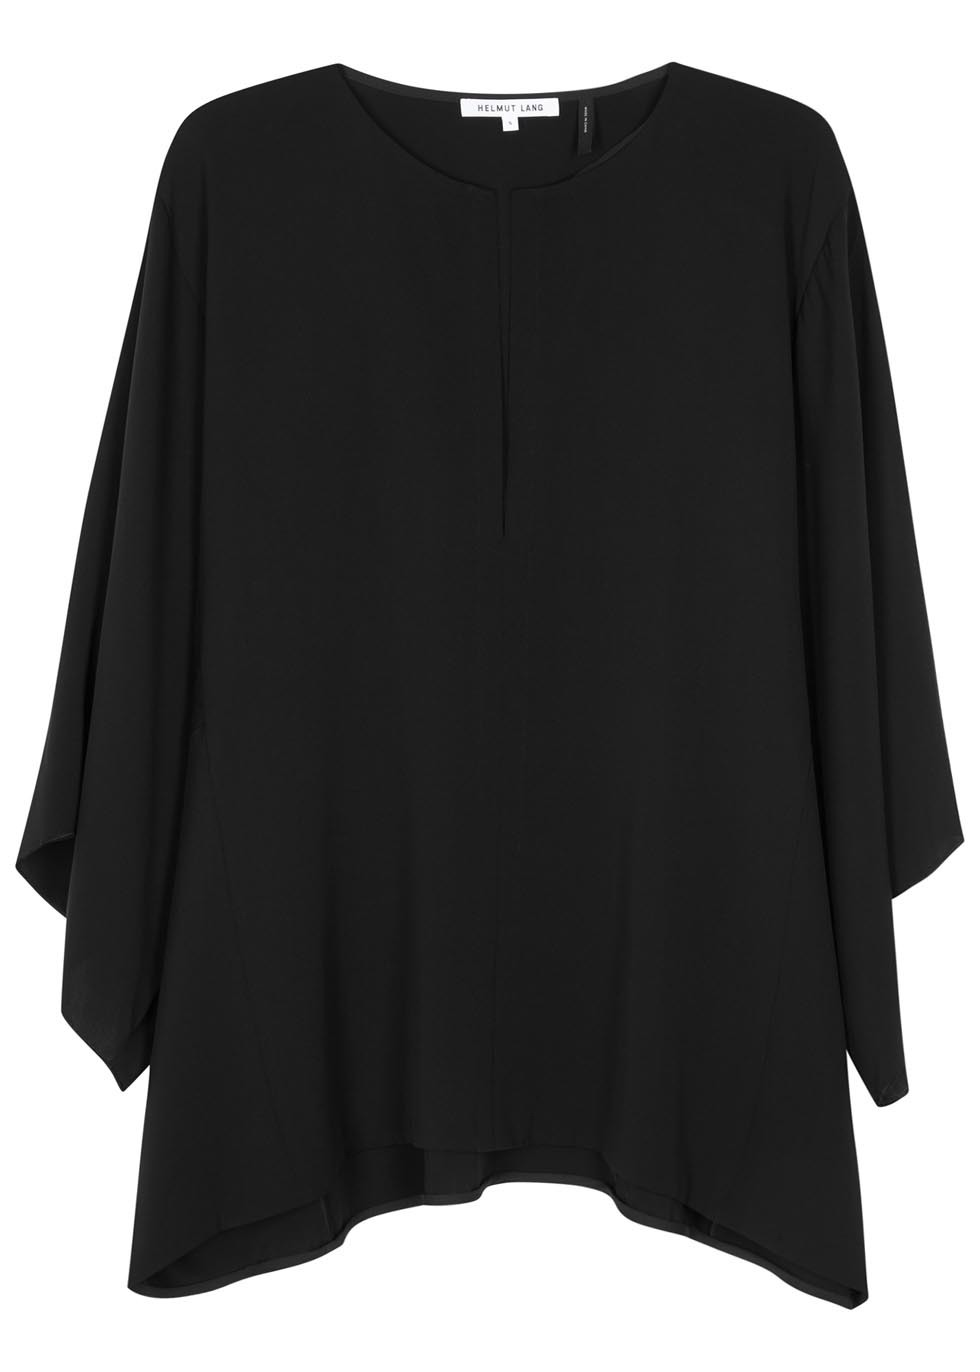 Black Silk Georgette Top - pattern: plain; predominant colour: black; occasions: evening; length: standard; style: top; fibres: silk - 100%; fit: body skimming; neckline: crew; sleeve length: long sleeve; sleeve style: standard; texture group: sheer fabrics/chiffon/organza etc.; pattern type: fabric; season: s/s 2016; wardrobe: event